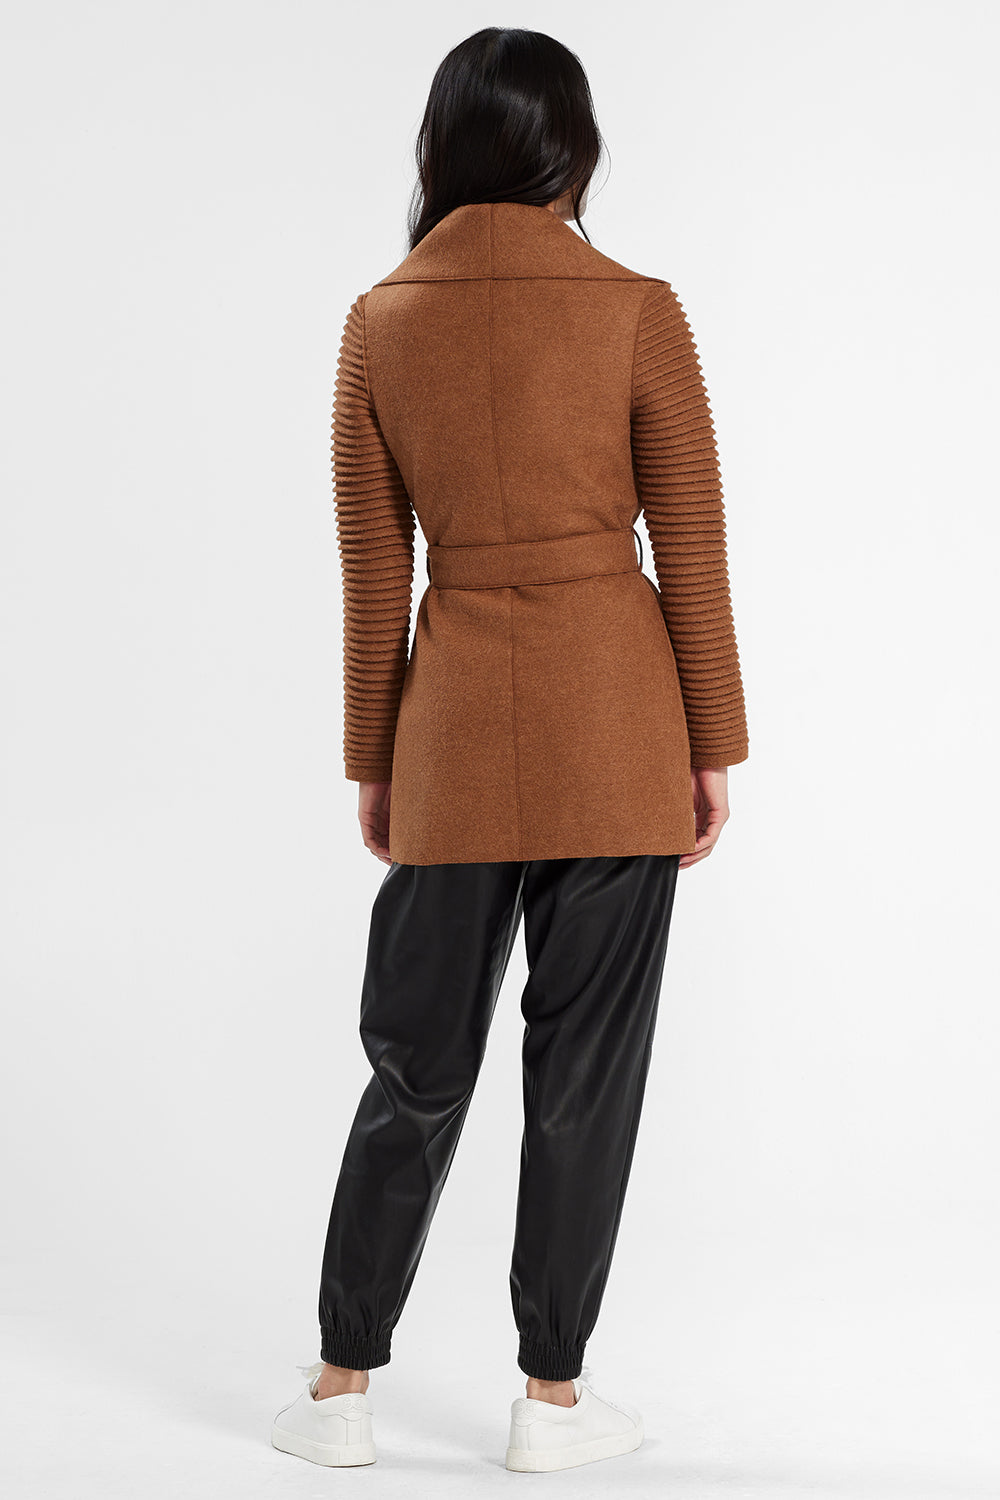 Sentaler Wrap Coat with Ribbed Sleeves featured in Superfine Alpaca and available in Dark Camel. Seen from back.